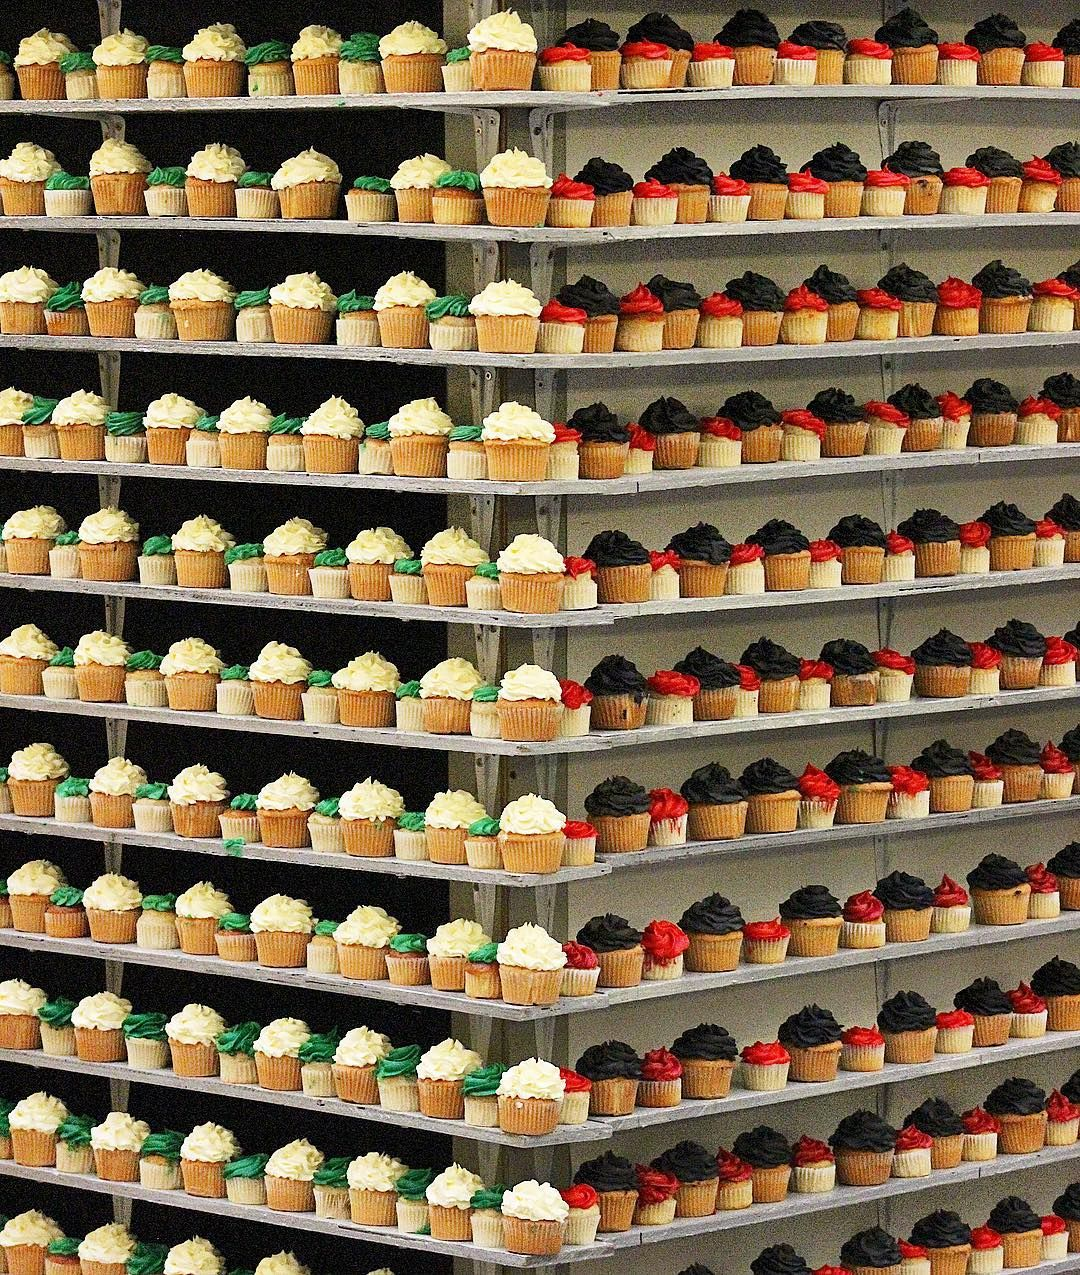 Did you guys witness the cupcake tower made by @sugaholicbakeshop & @ribbonsandballoonsbakery at @wafi_mall today?! It was a grand affair as they tried to break the Guinness world record by creating a 8m long tower of 8000 cupcakes!!! How satisfying is it to see so many cupcakes symmetrically stacked #worldrecord #cupcakes #dessert #cake #tower #UAE #friday #weekend #chocolate #flag #beautiful #cute #cupcake  #instalike #instadubai #burjkabkyk #dubaifood #lovefood #foodies #food #foodgasm…